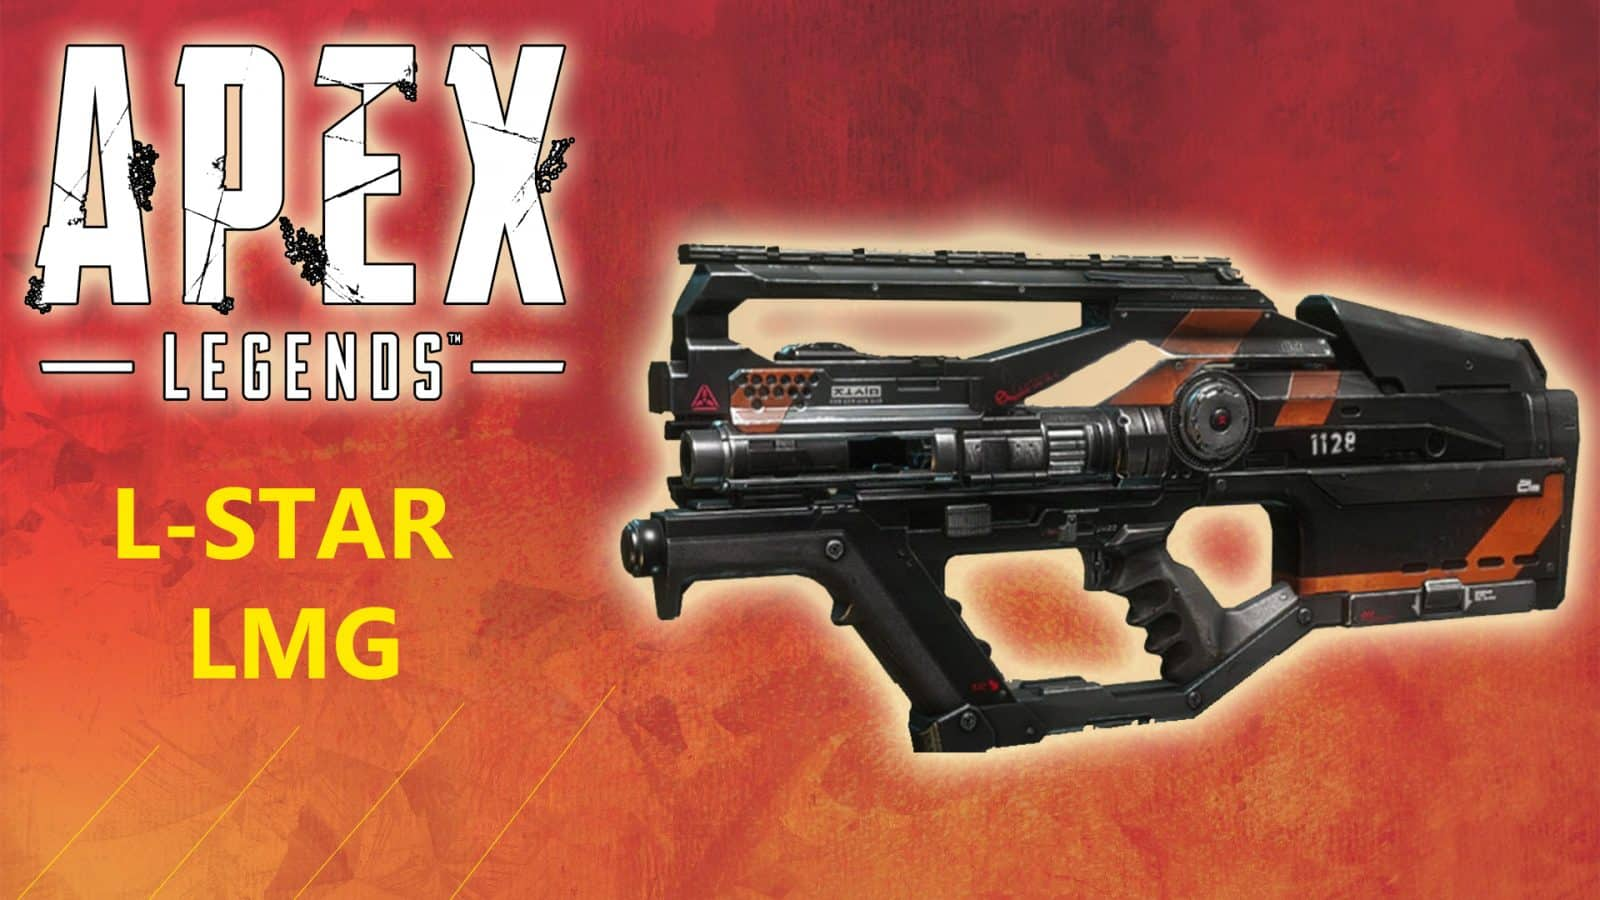 Apex Legends New Gun L-STAR LMG